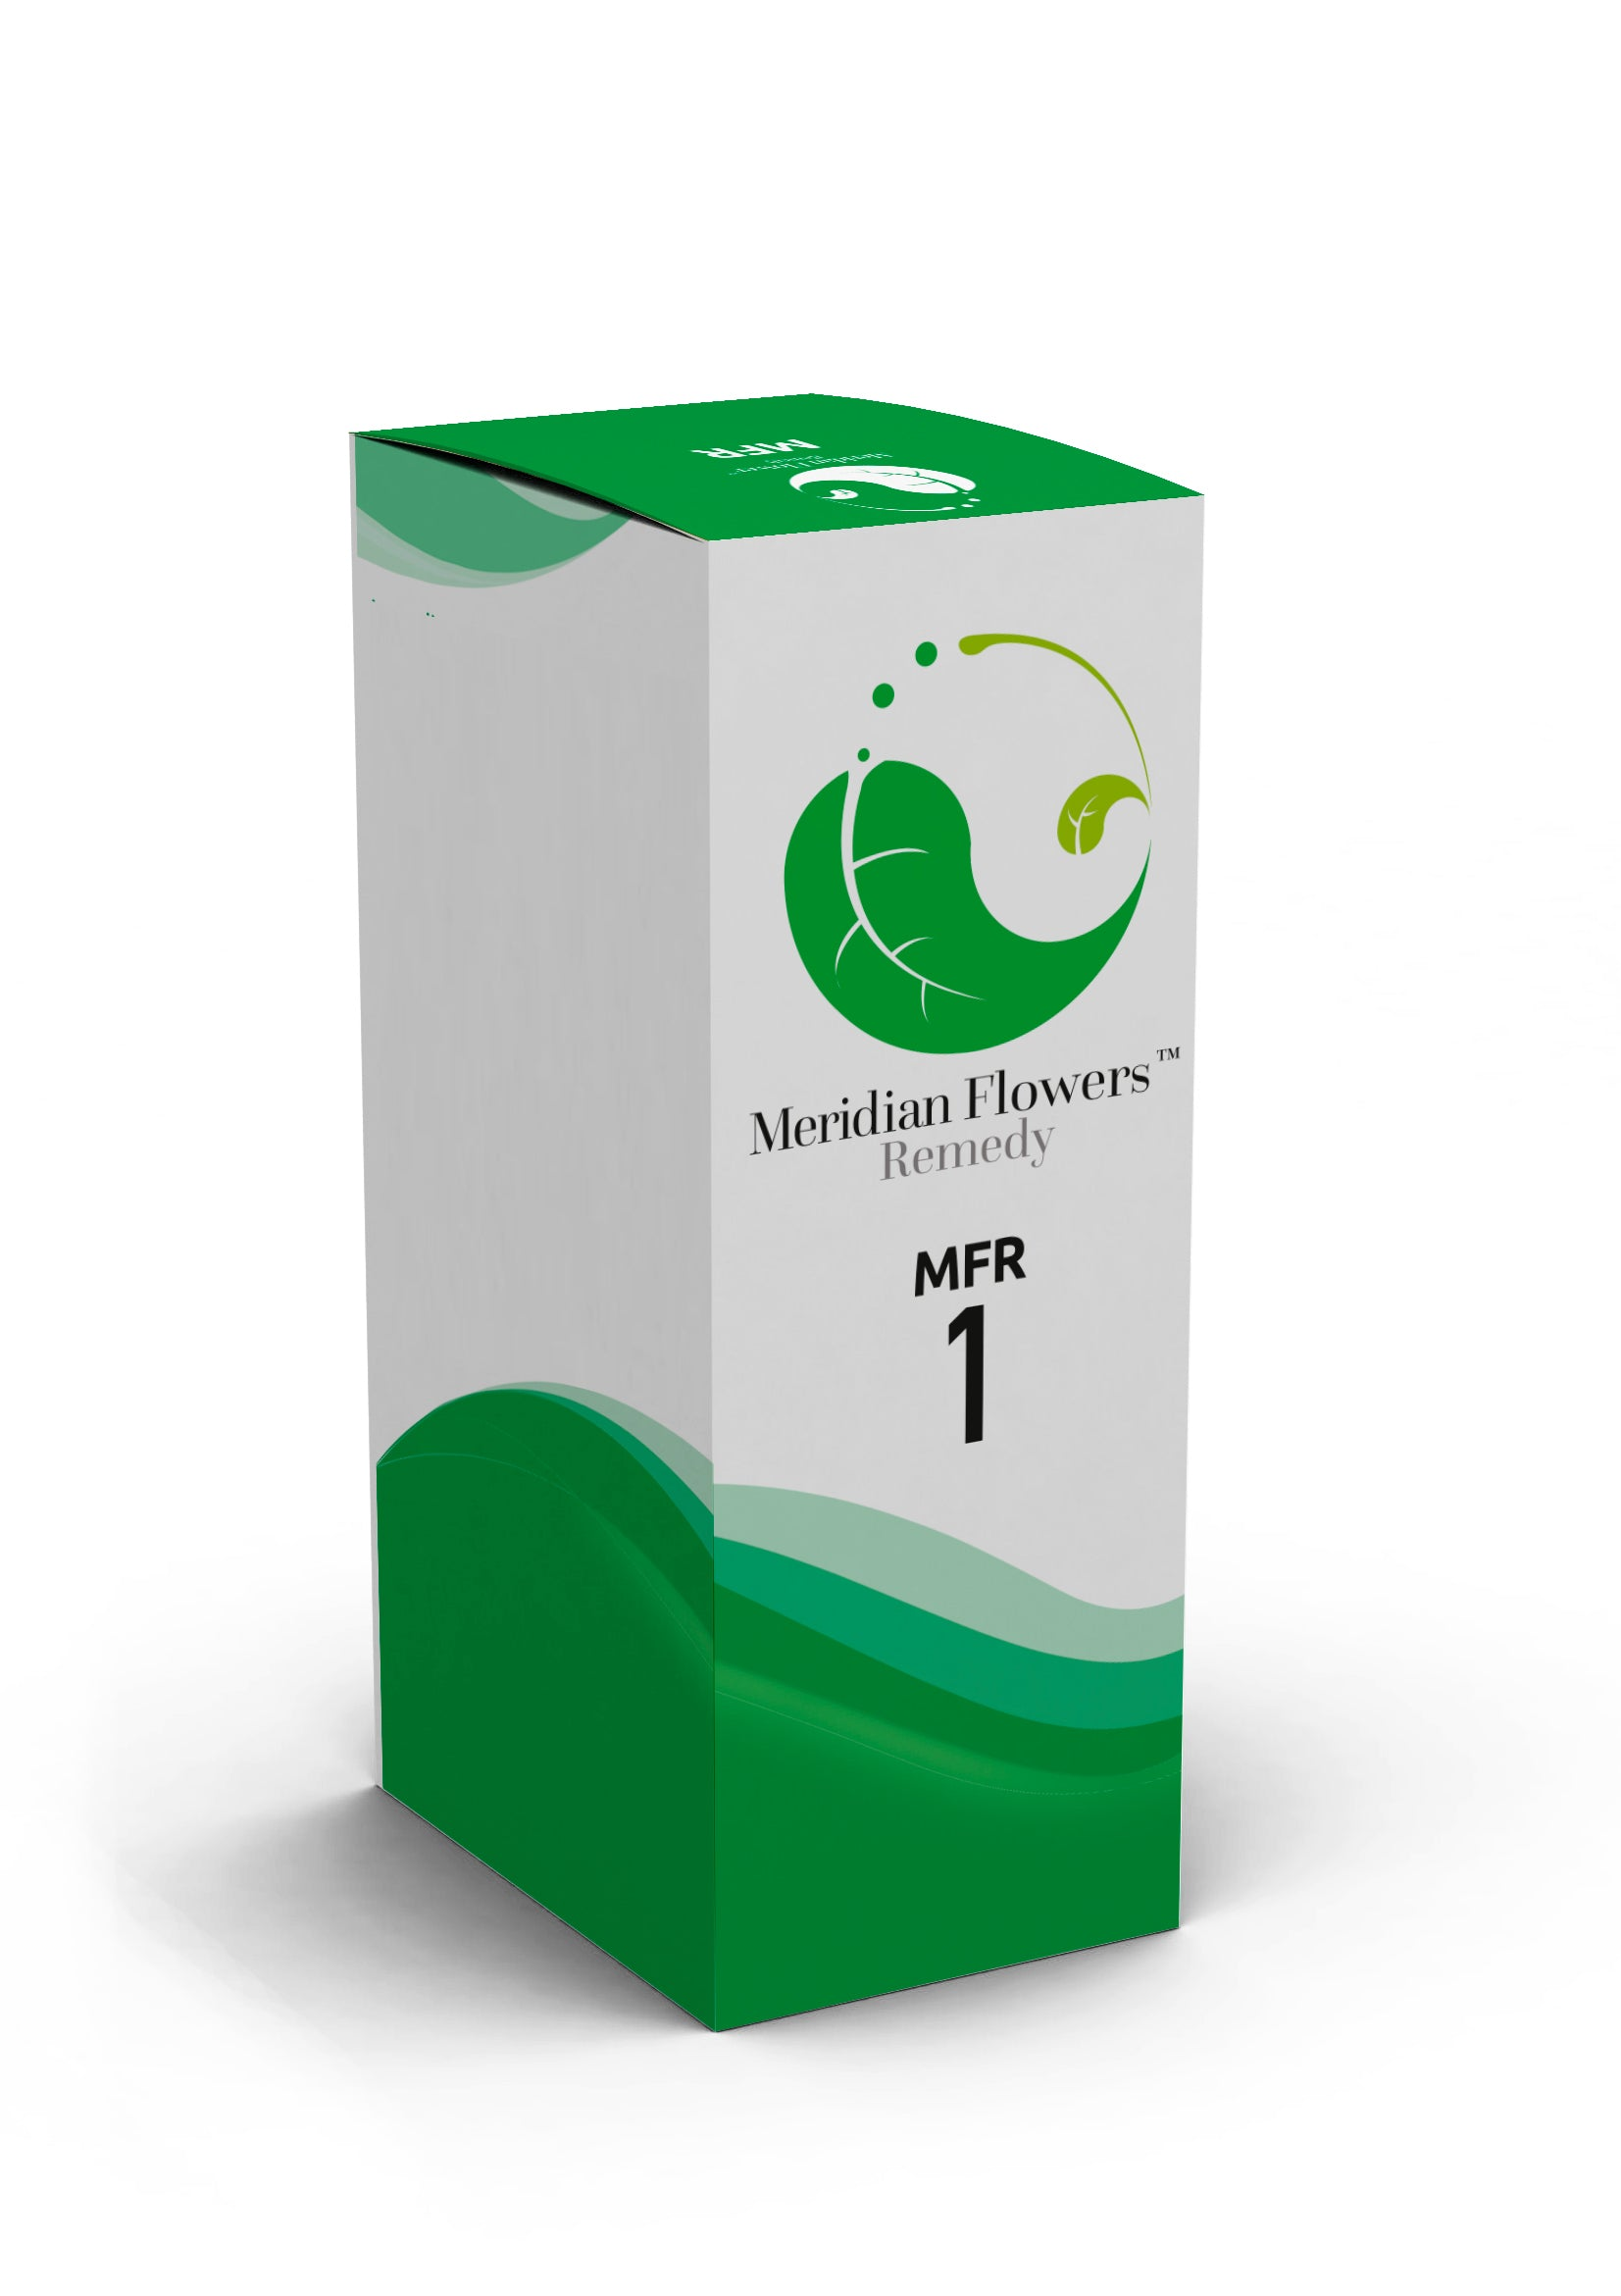 Meridian Flowers Remedy - MFR 1